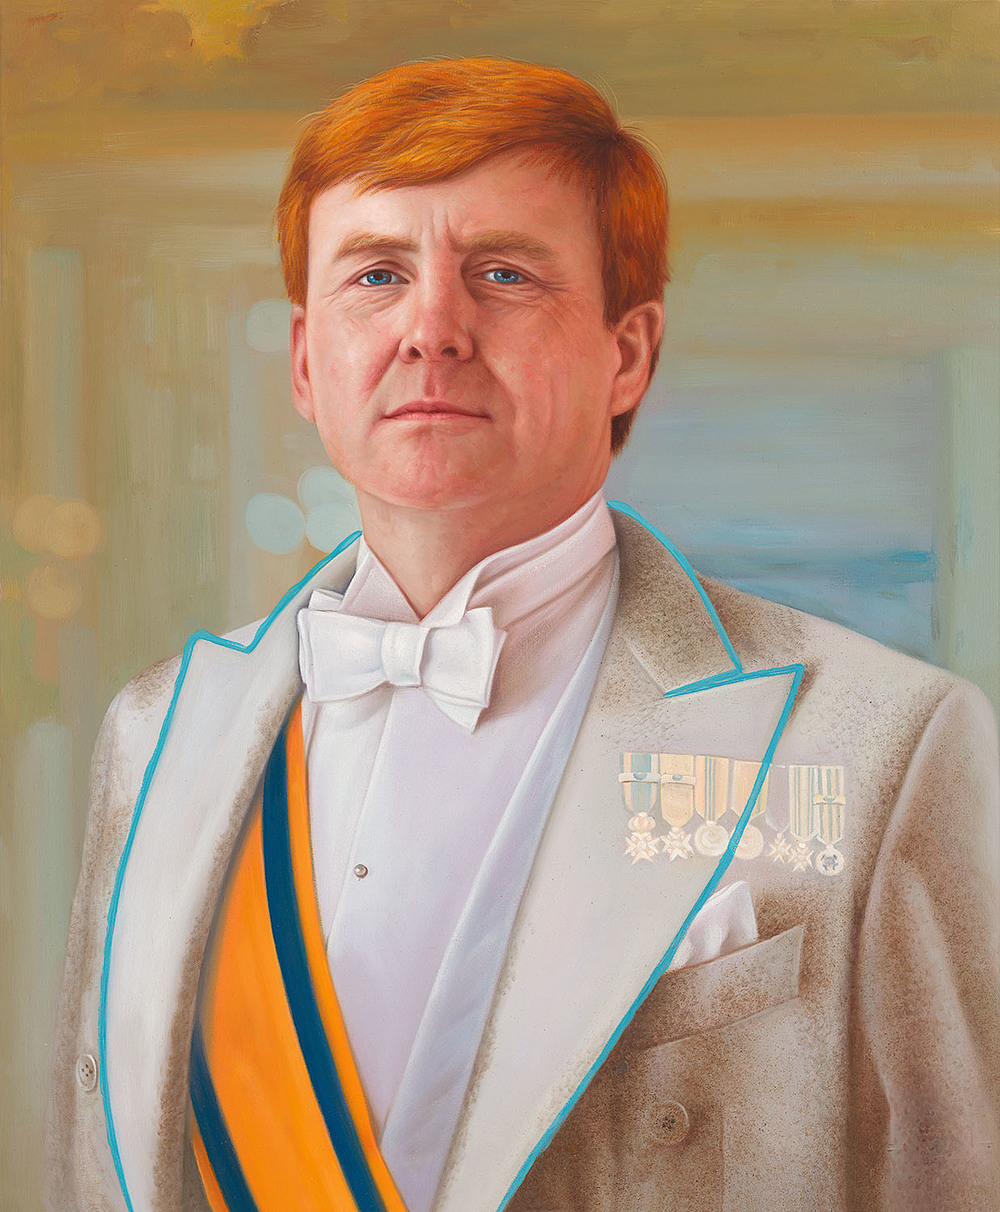 Alexander (King of the Netherlands)